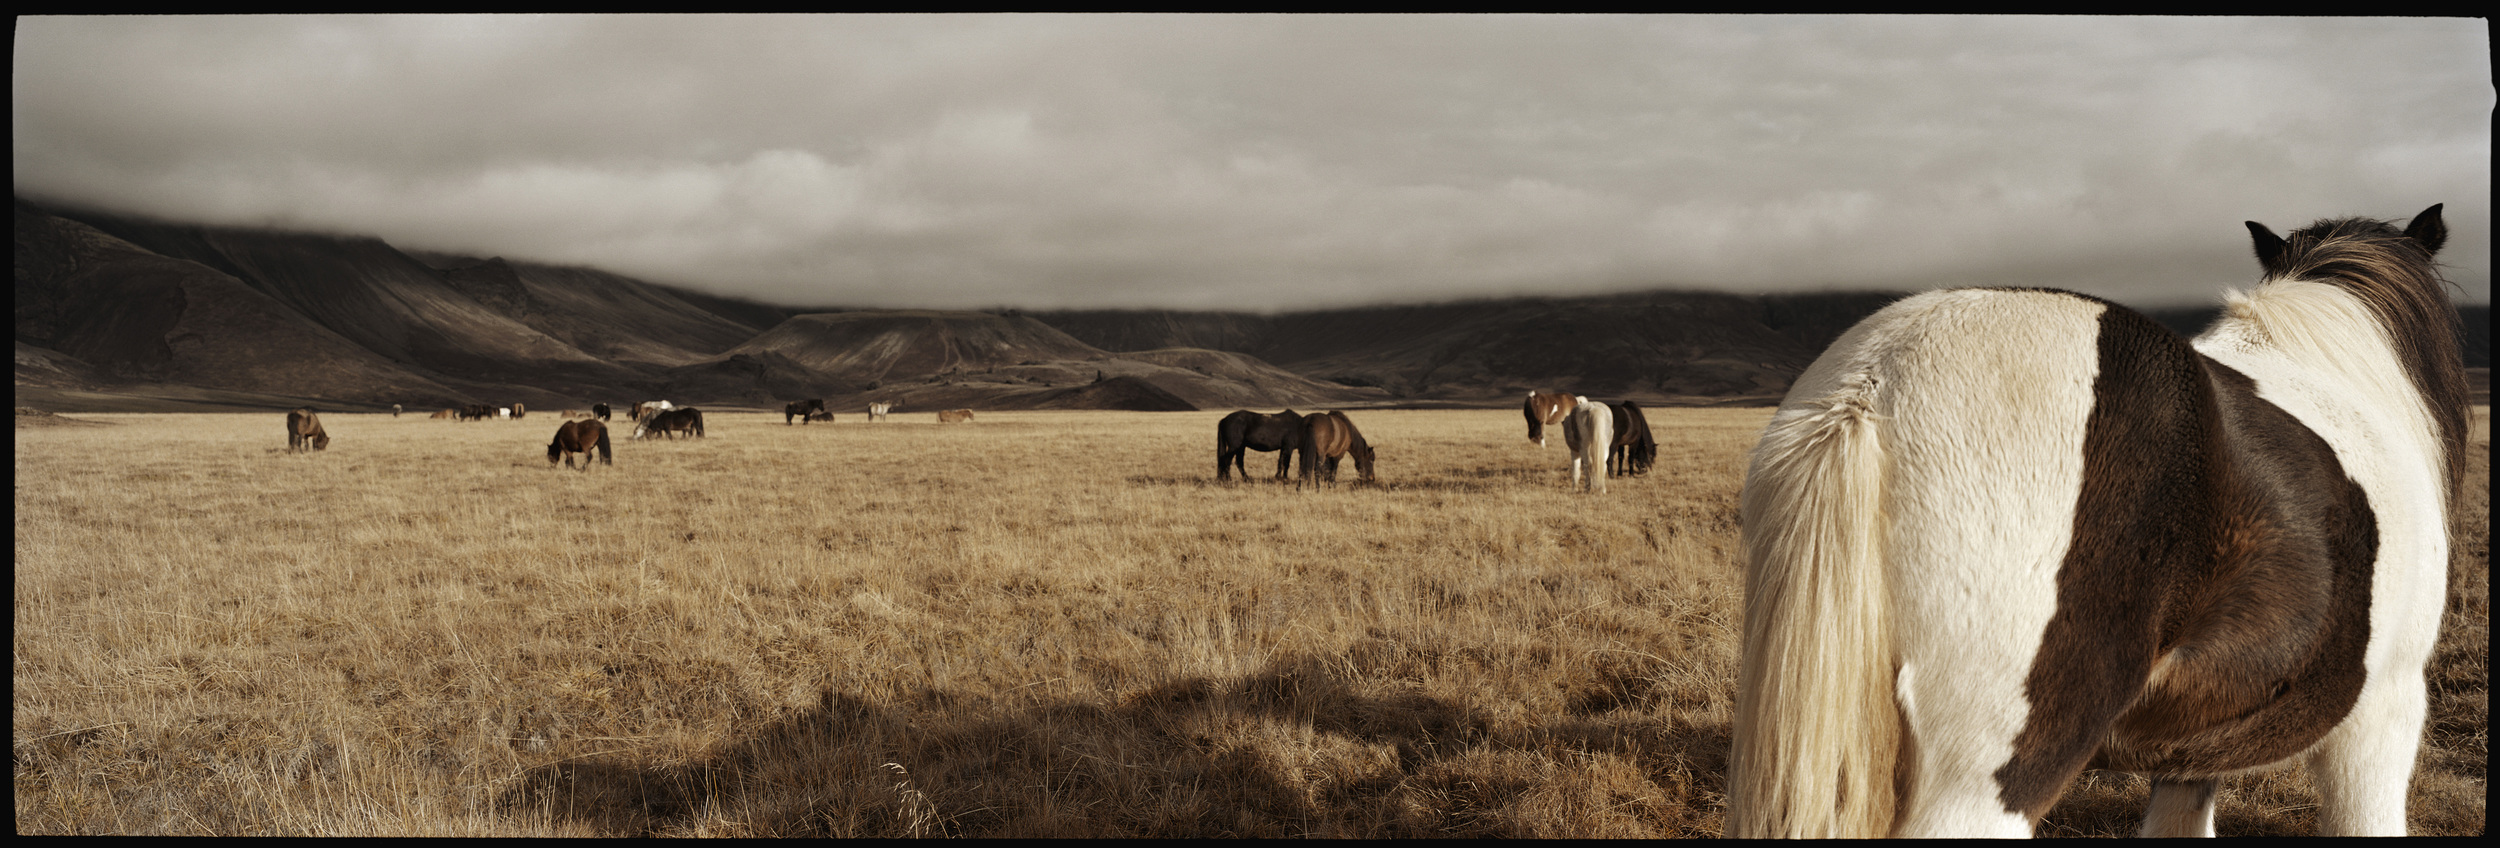 02.Icelandic horses, in a valley near Laugarvatn.